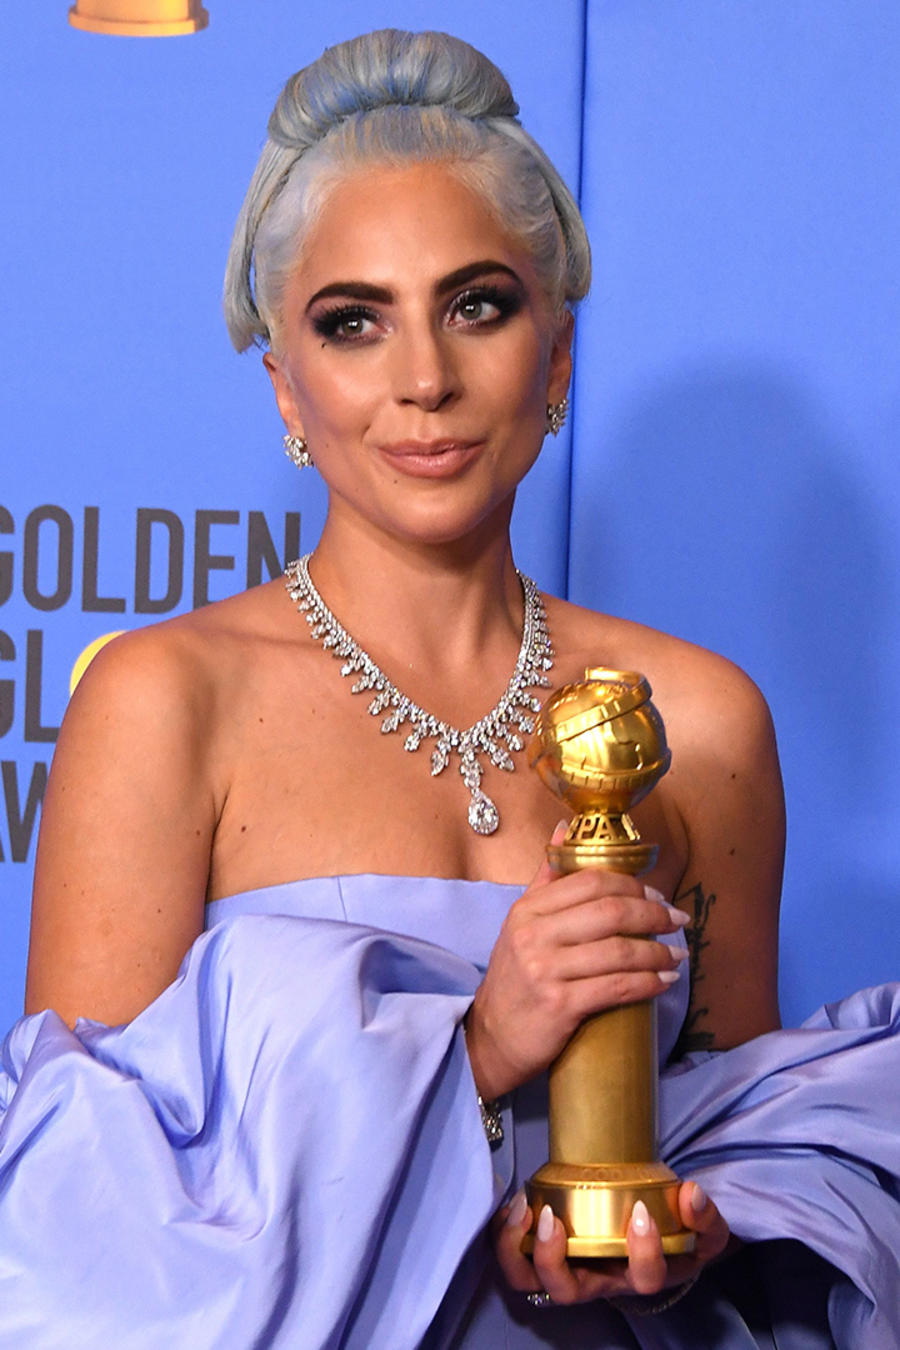 US-ENTERTAINMENT-FILM-TELEVISION-GOLDEN-GLOBES-PRESSROOM